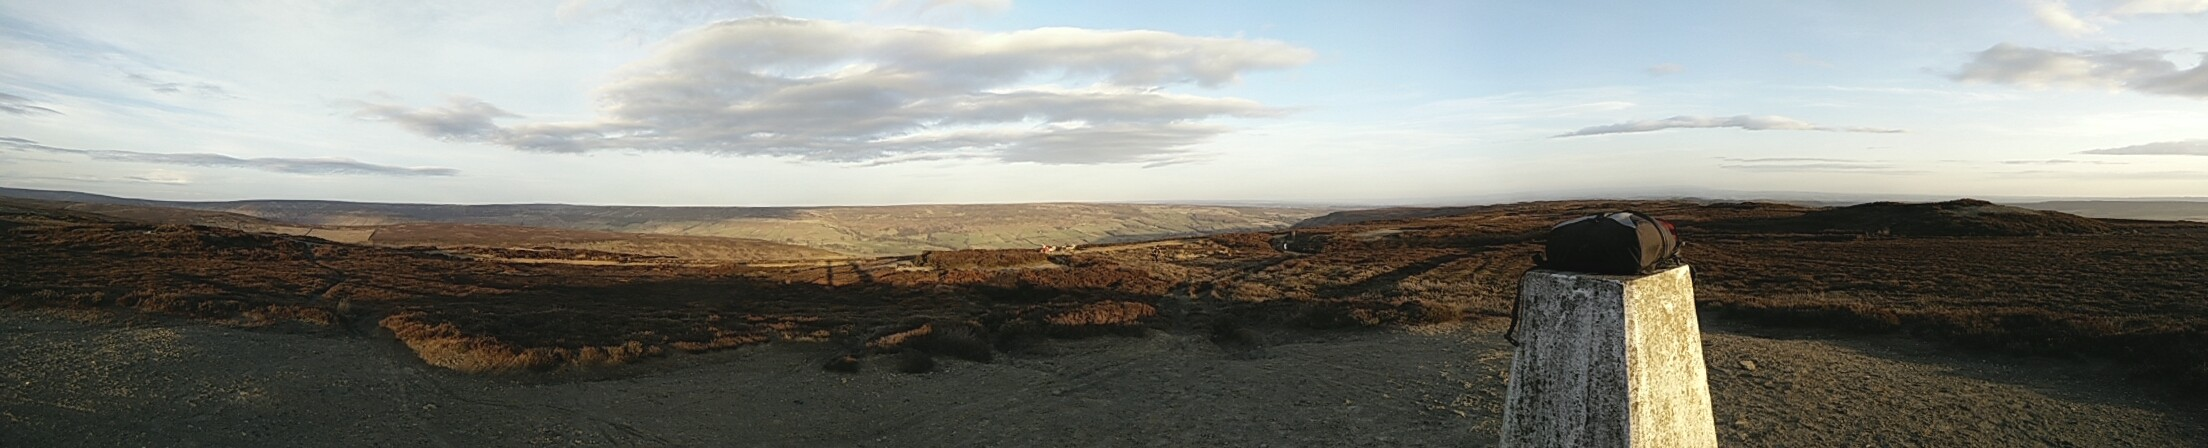 Not so epic journey to Yorkshire Pano_213